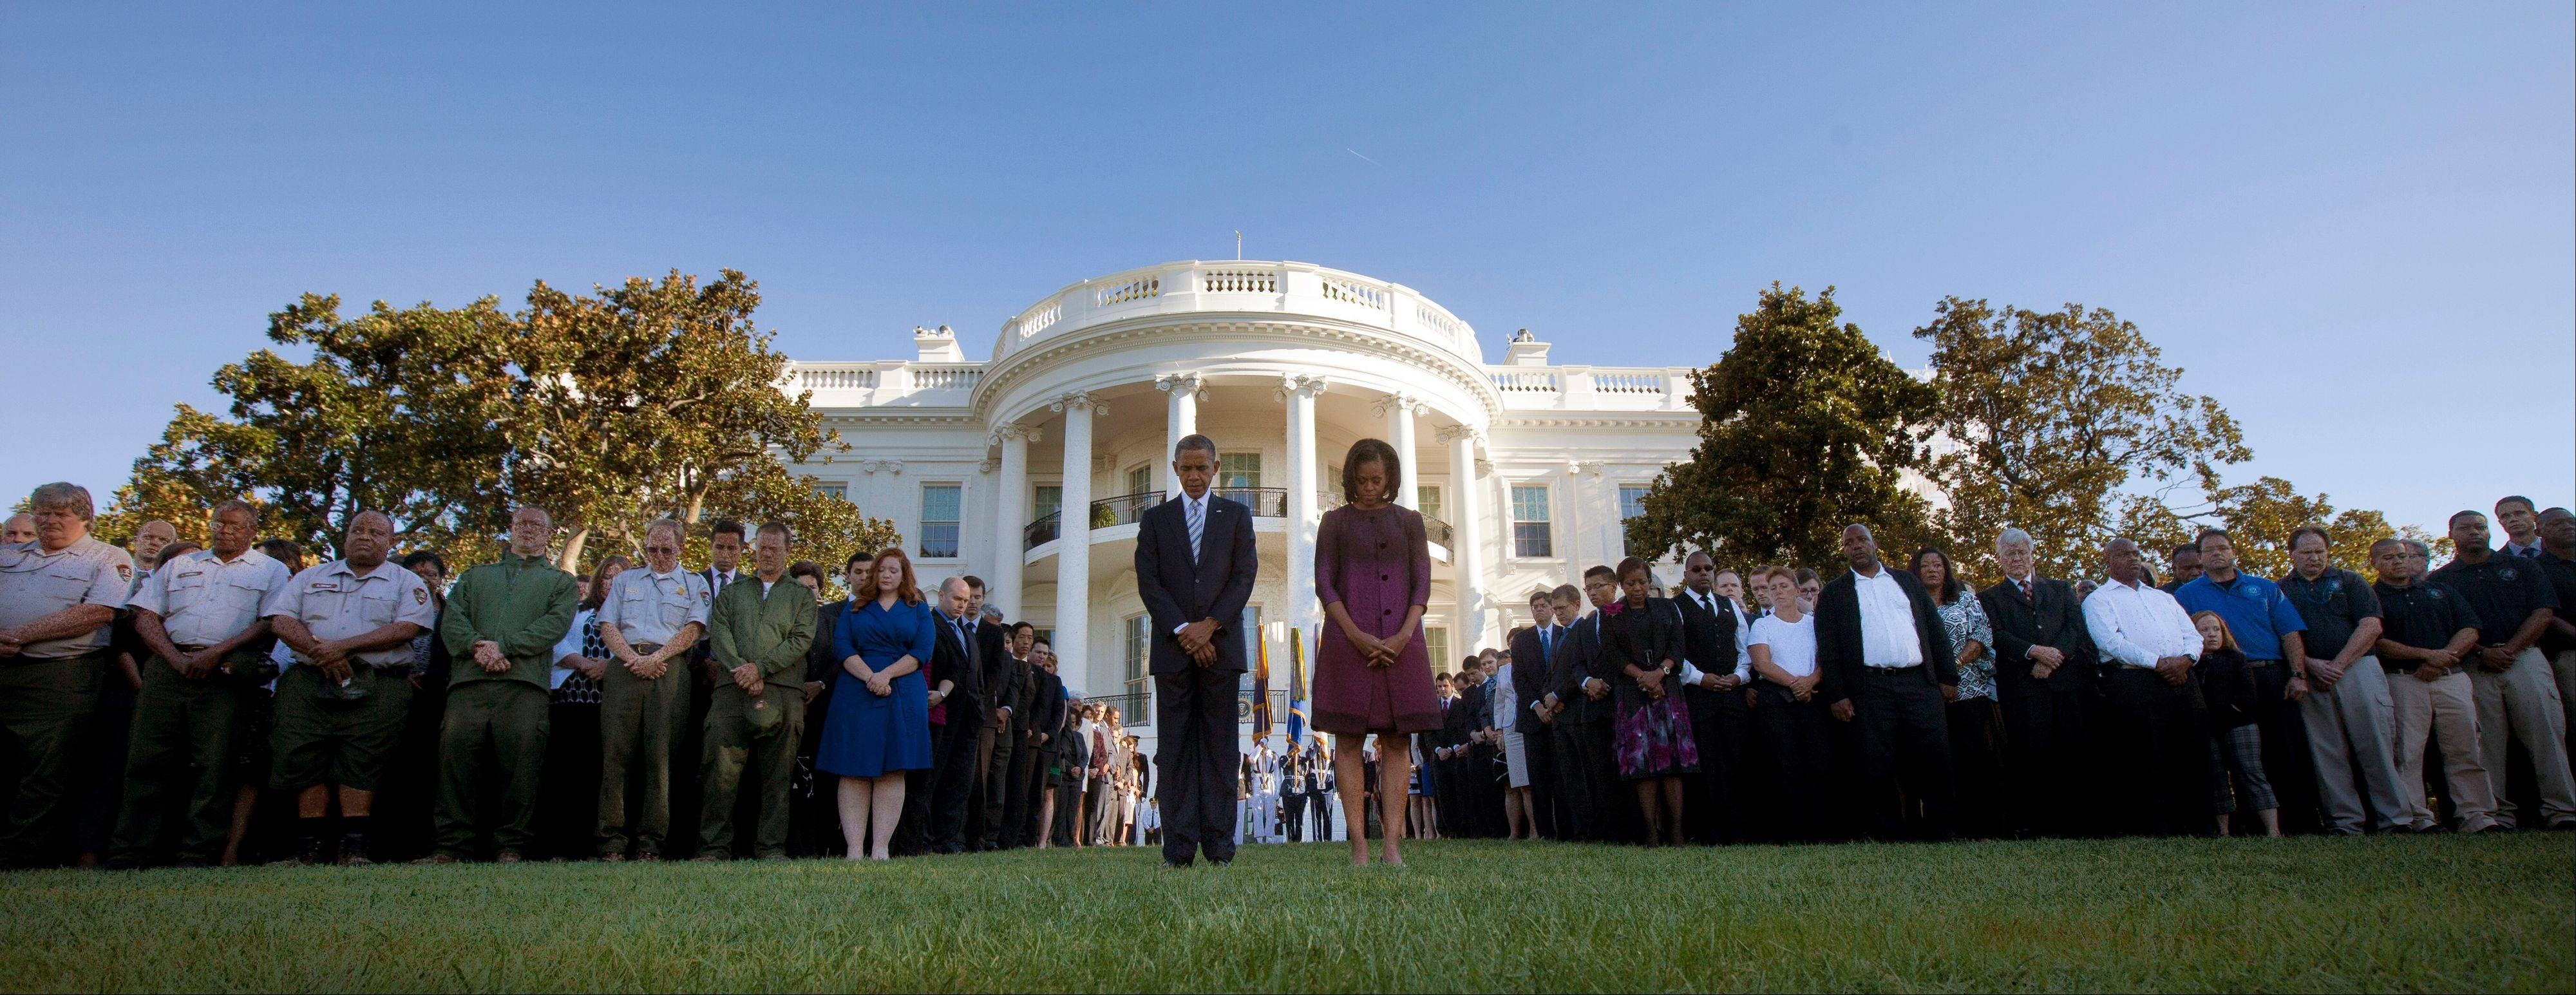 President Barack Obama and first lady Michelle Obama join members of the White House staff during a moment of silence to mark the 11th anniversary of the Sept, 11th, Tuesday, Sept. 11, 2012, on the South Lawn of the White House in Washington.